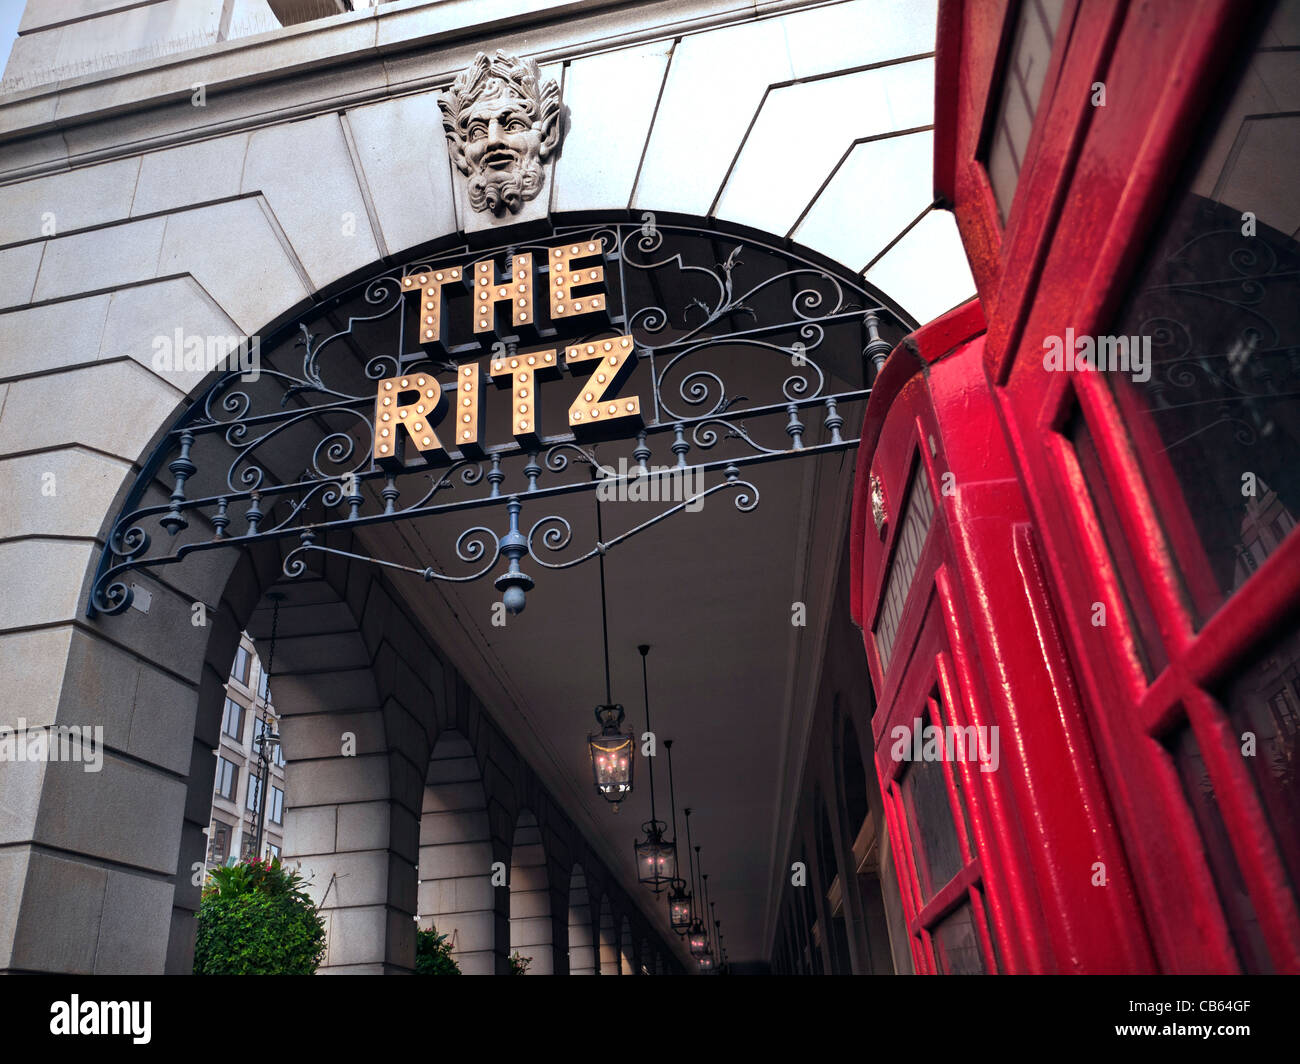 The Ritz Hotel London a luxury 5-star hotel in Piccadilly with preserved traditional red telephone boxes in foreground - Stock Image